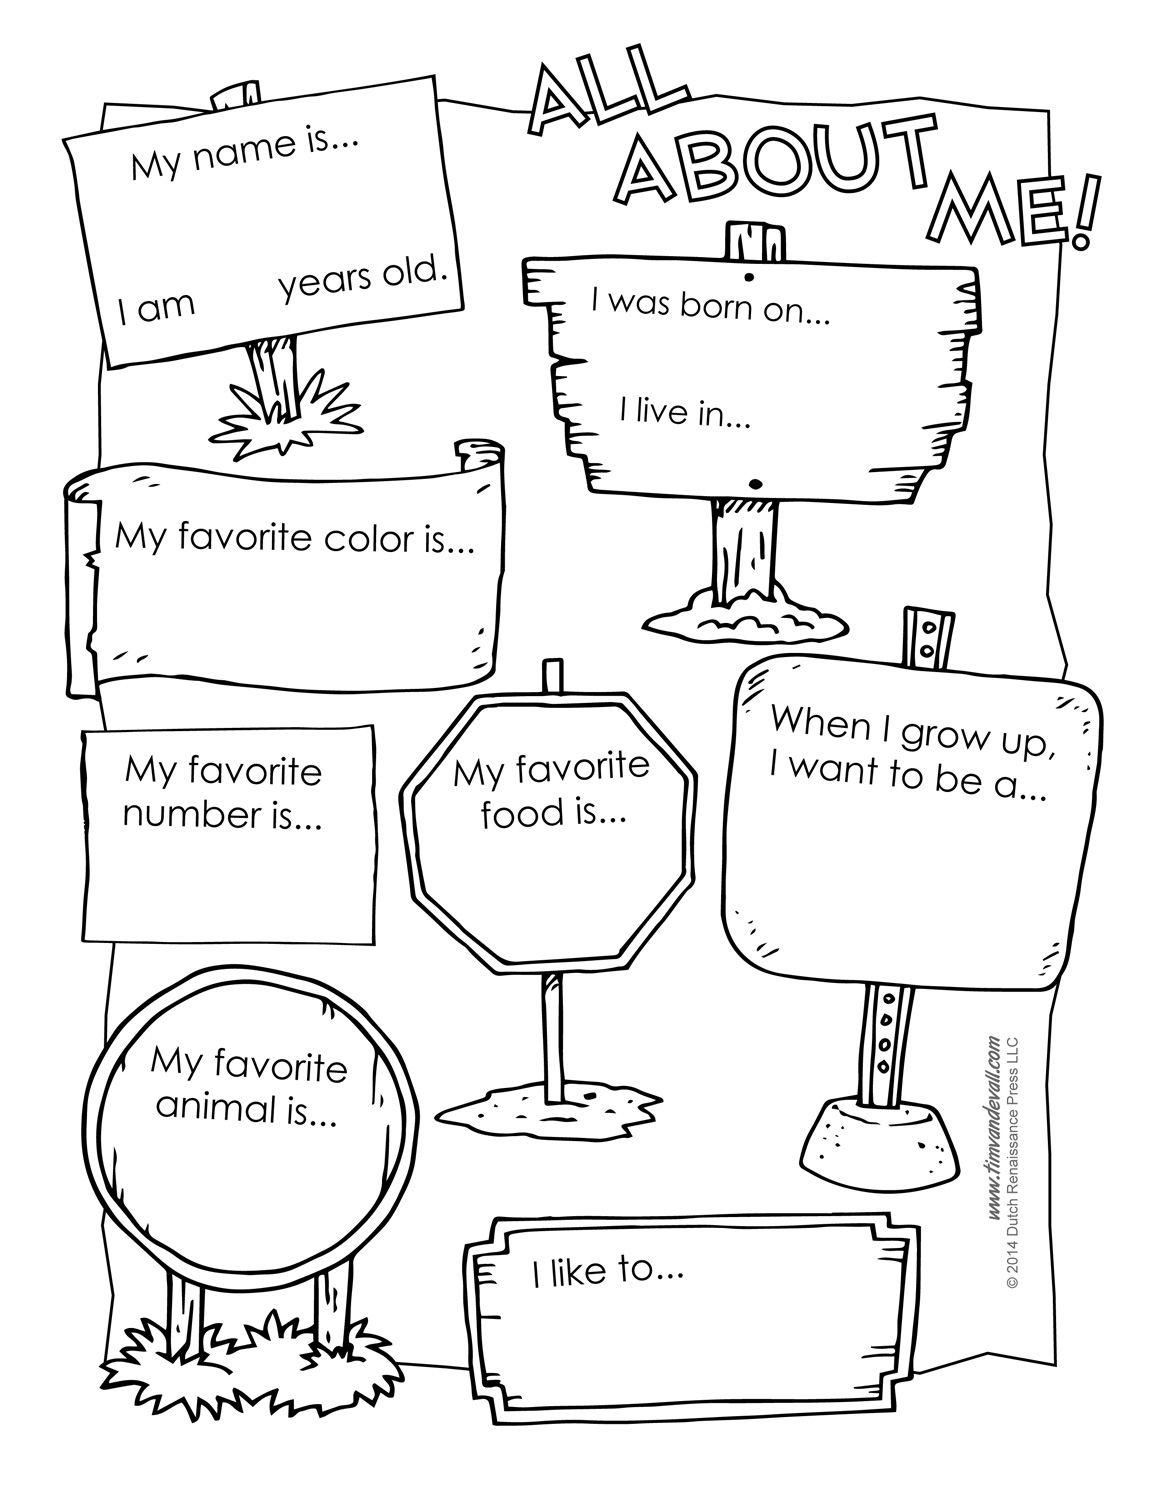 Printable Worksheets All About Me